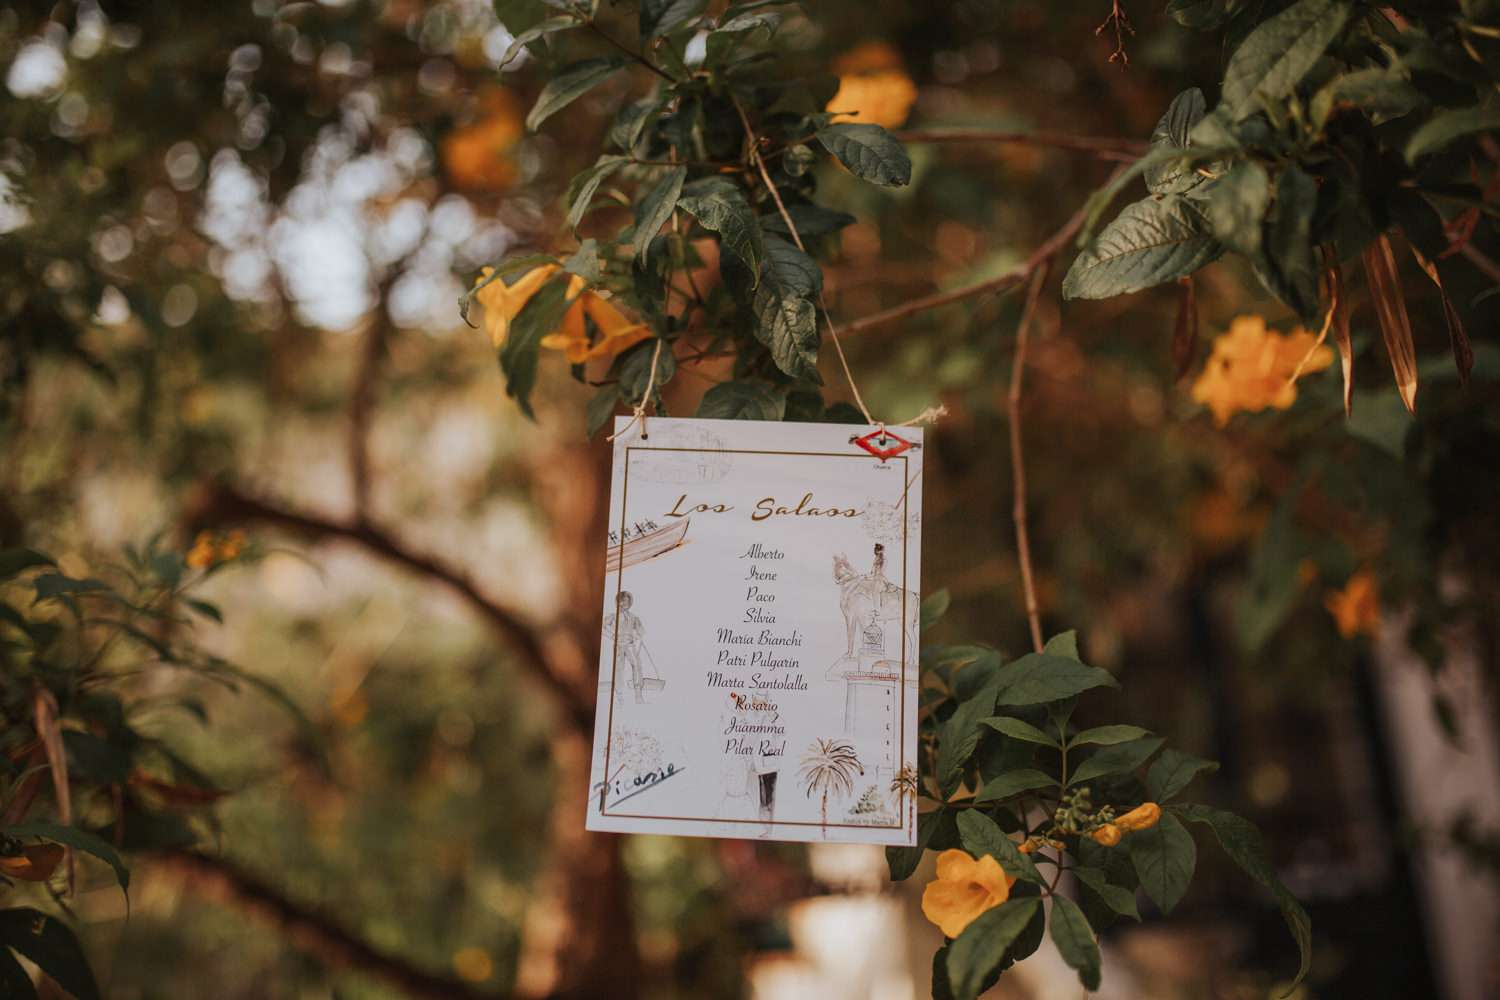 <p>Table assignments hanging from tree</p><br><br>